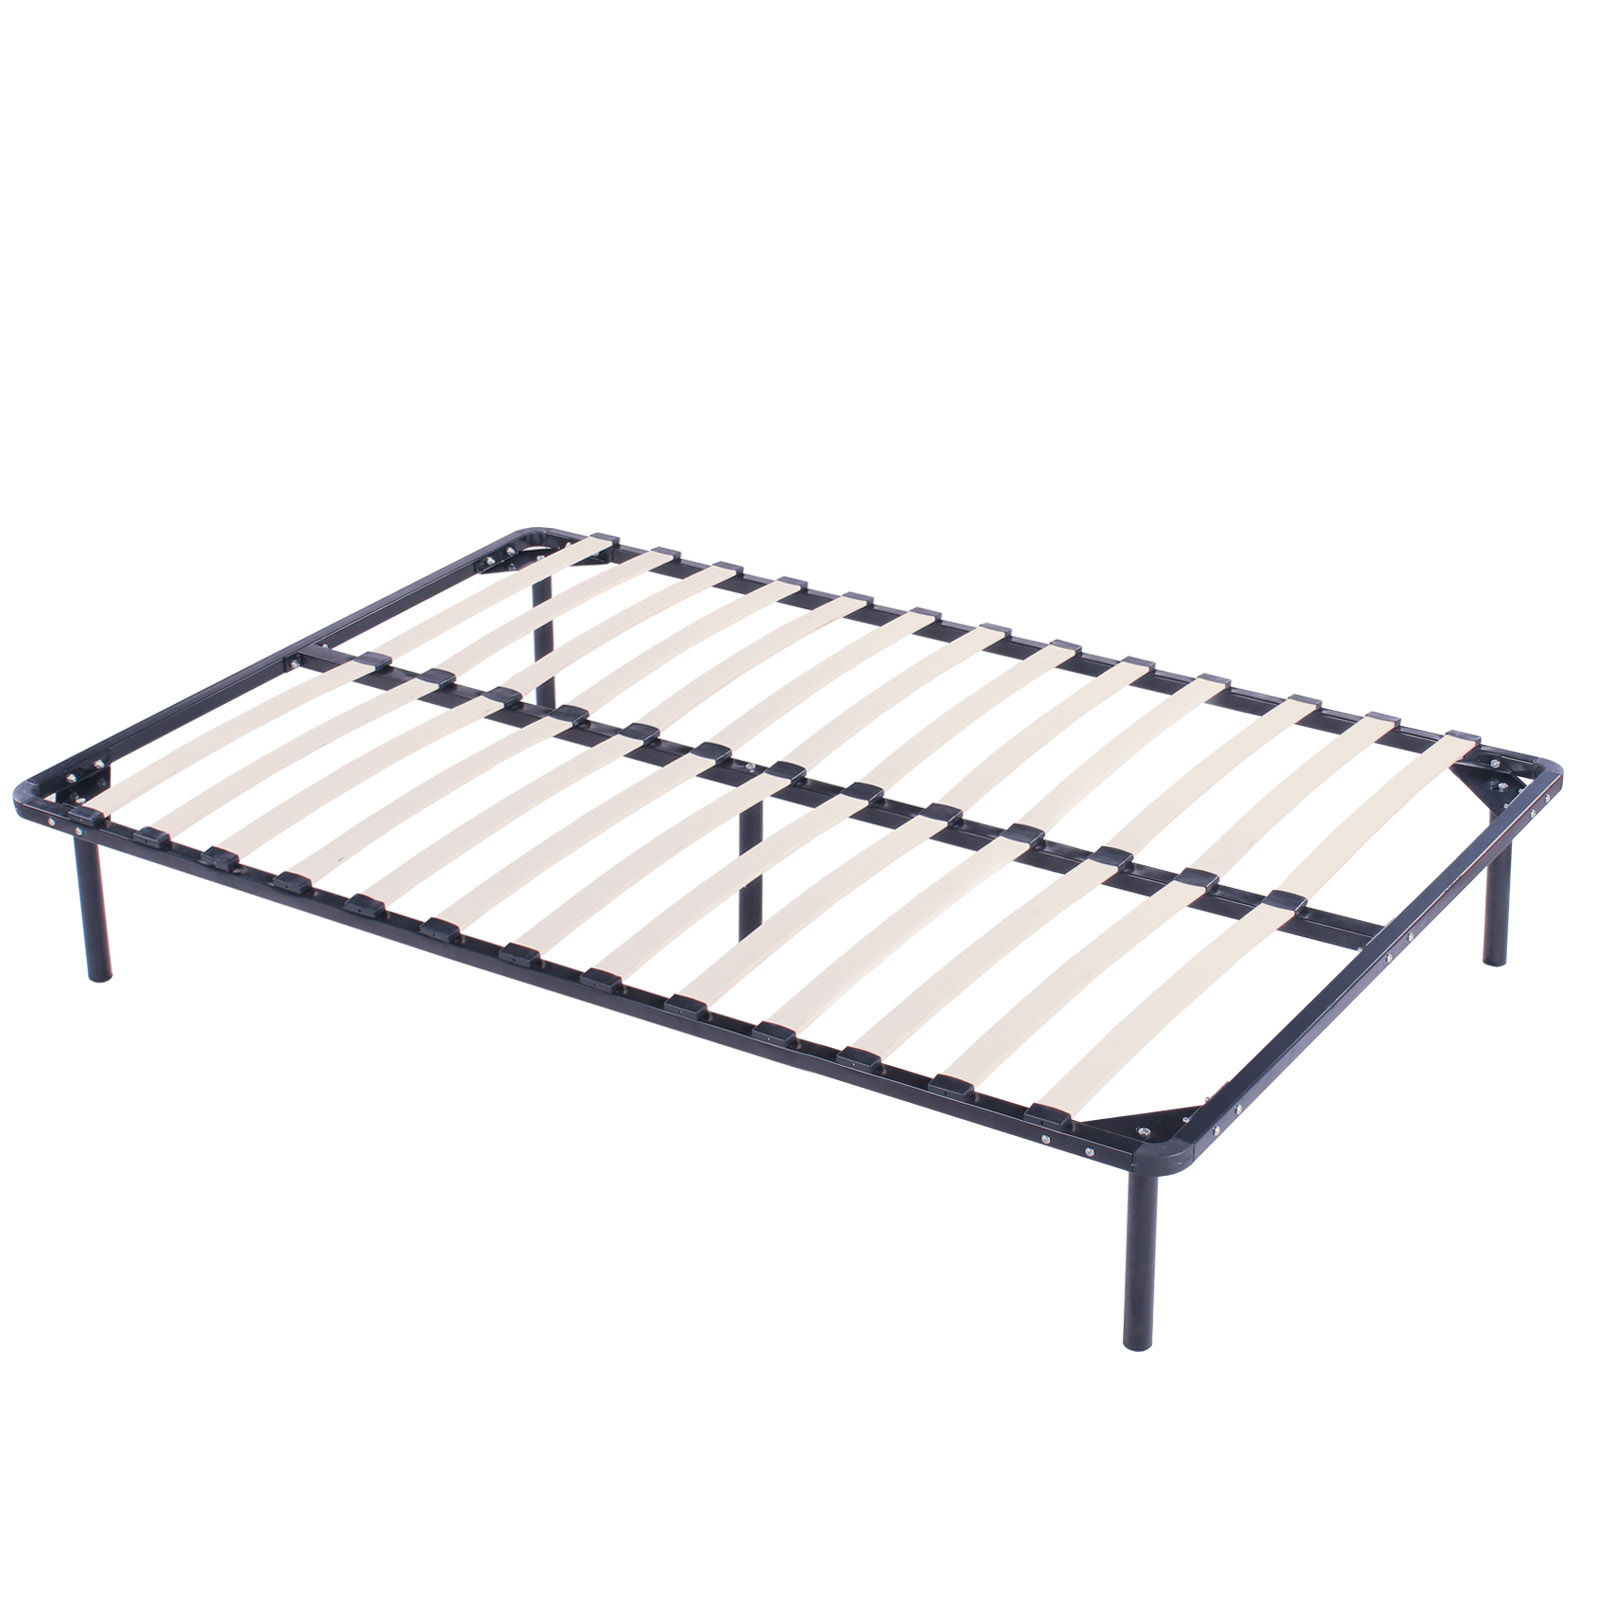 wood slats metal bed frame platform bedroom mattress foundation queen size usa ebay. Black Bedroom Furniture Sets. Home Design Ideas